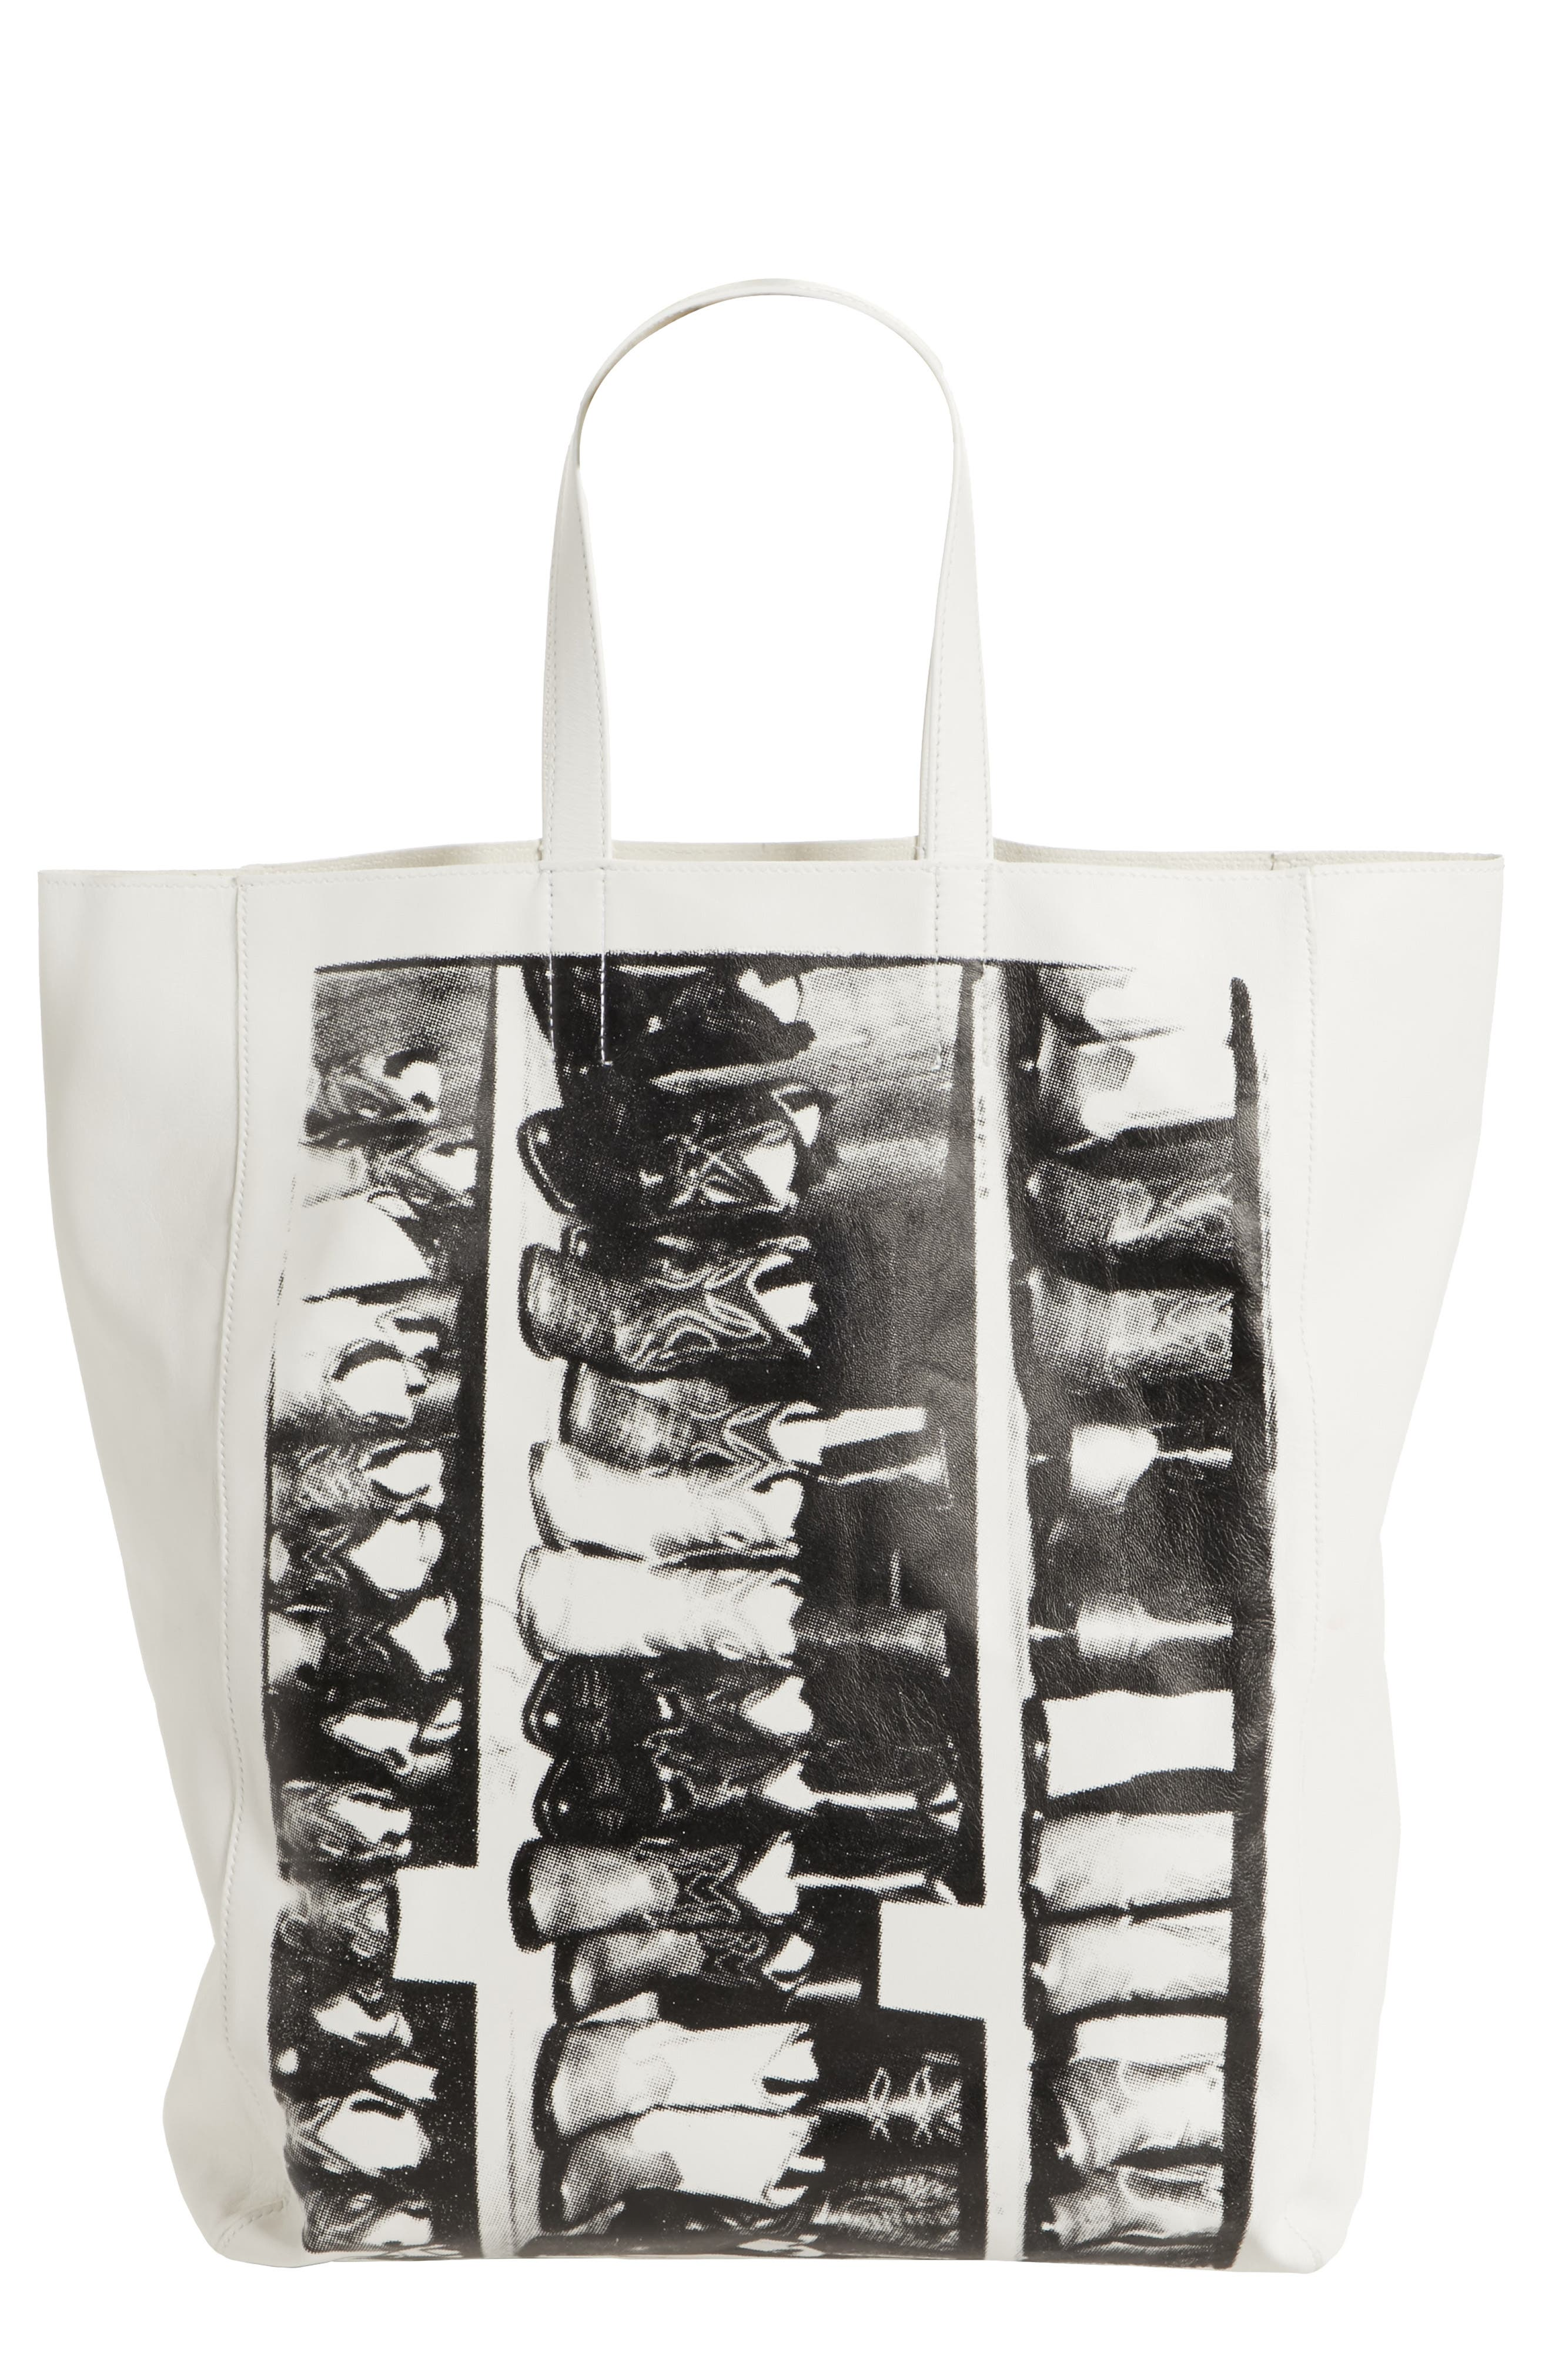 x Andy Warhol Foundation Boots Leather Tote,                             Main thumbnail 1, color,                             White/ Black